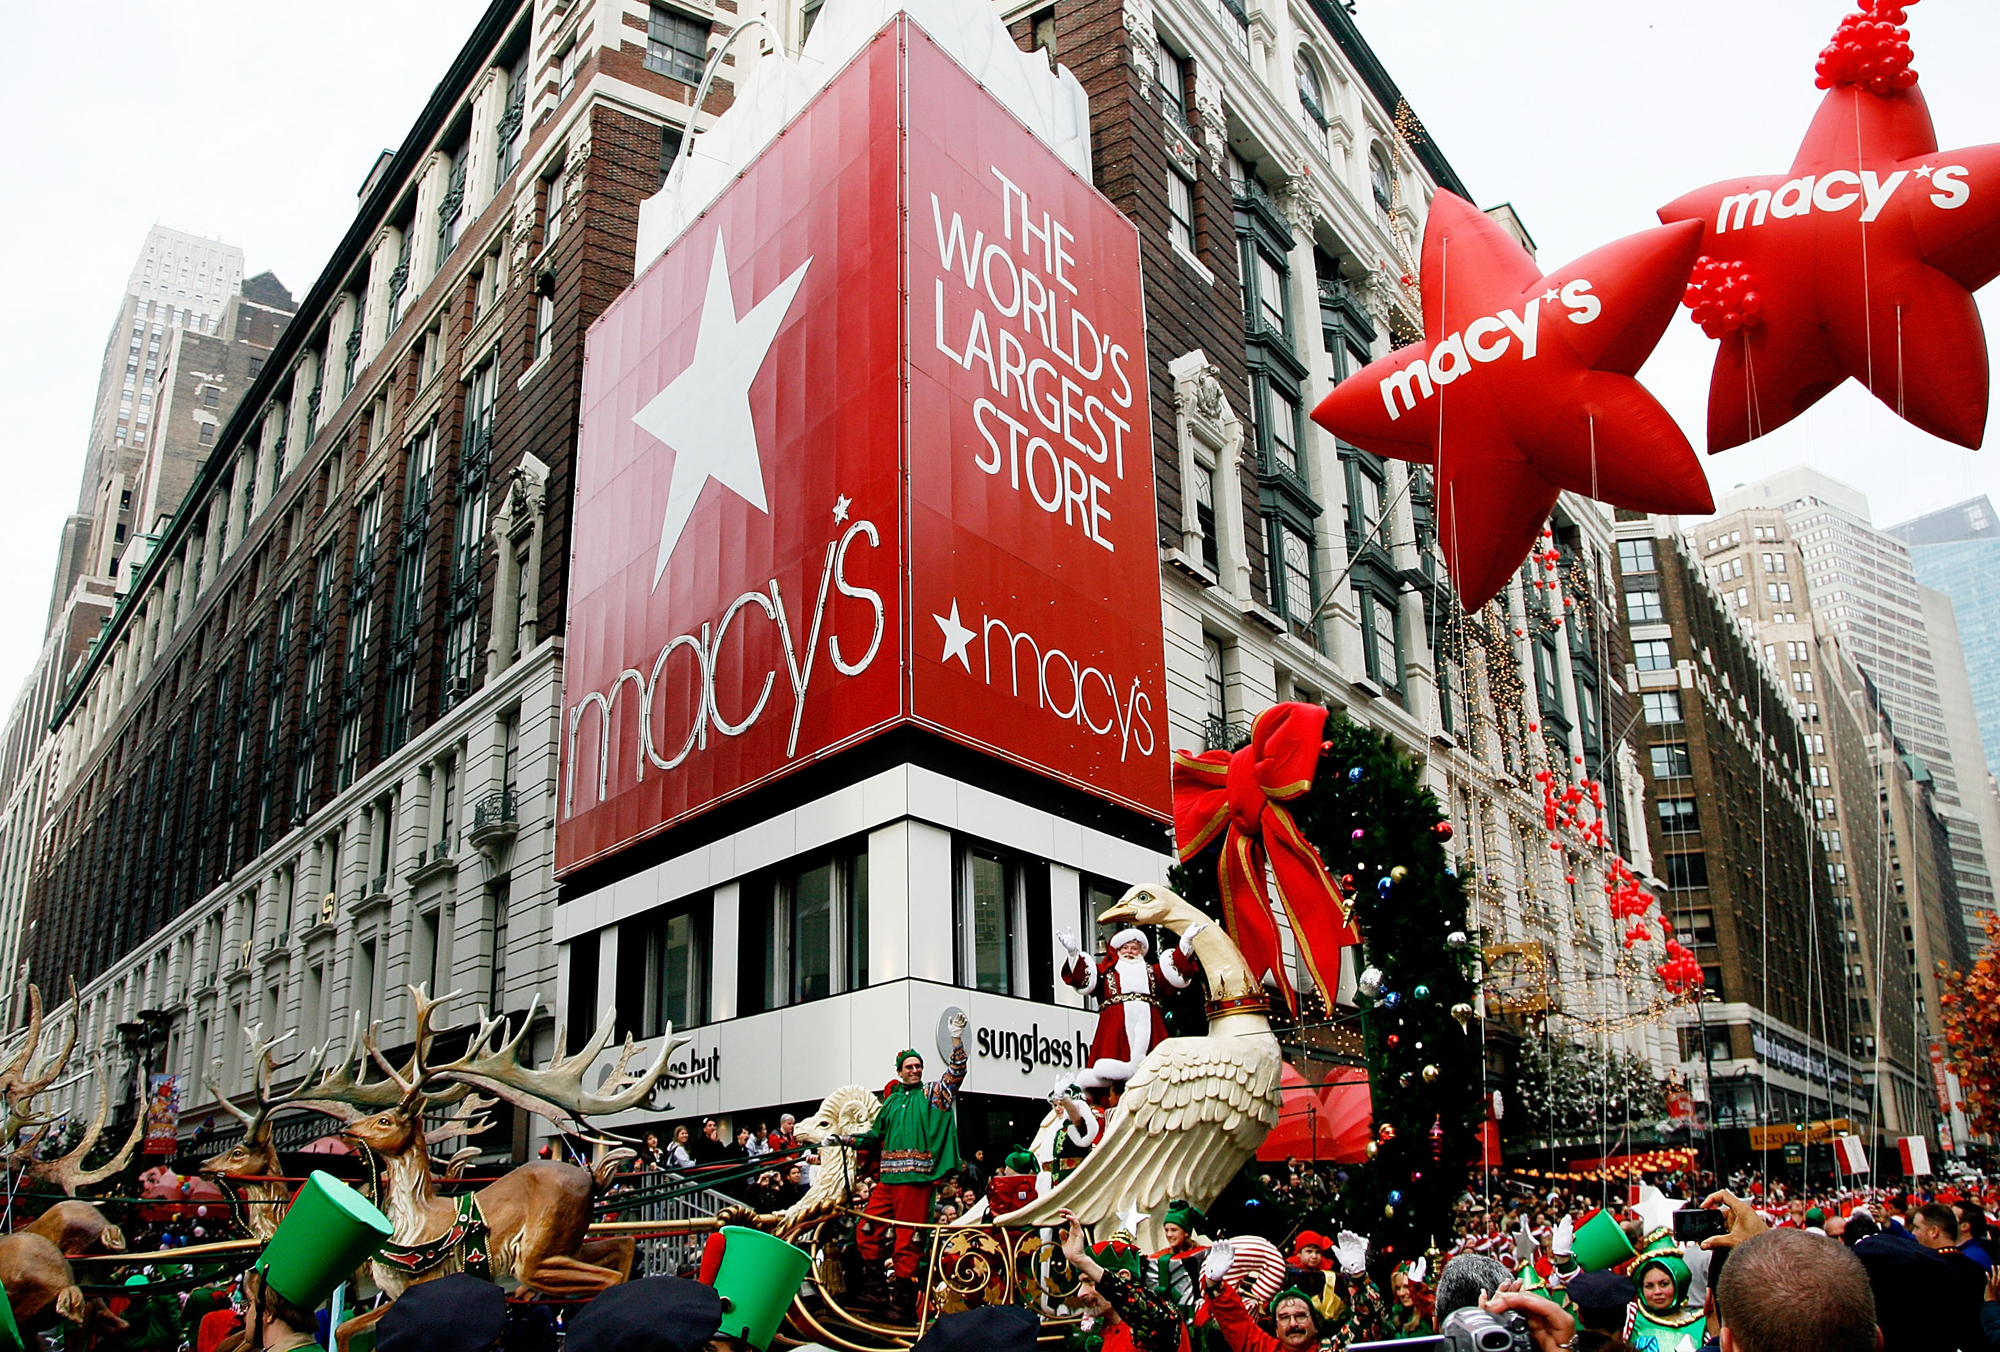 81st Annual Macy's Thanksgiving Day Parade